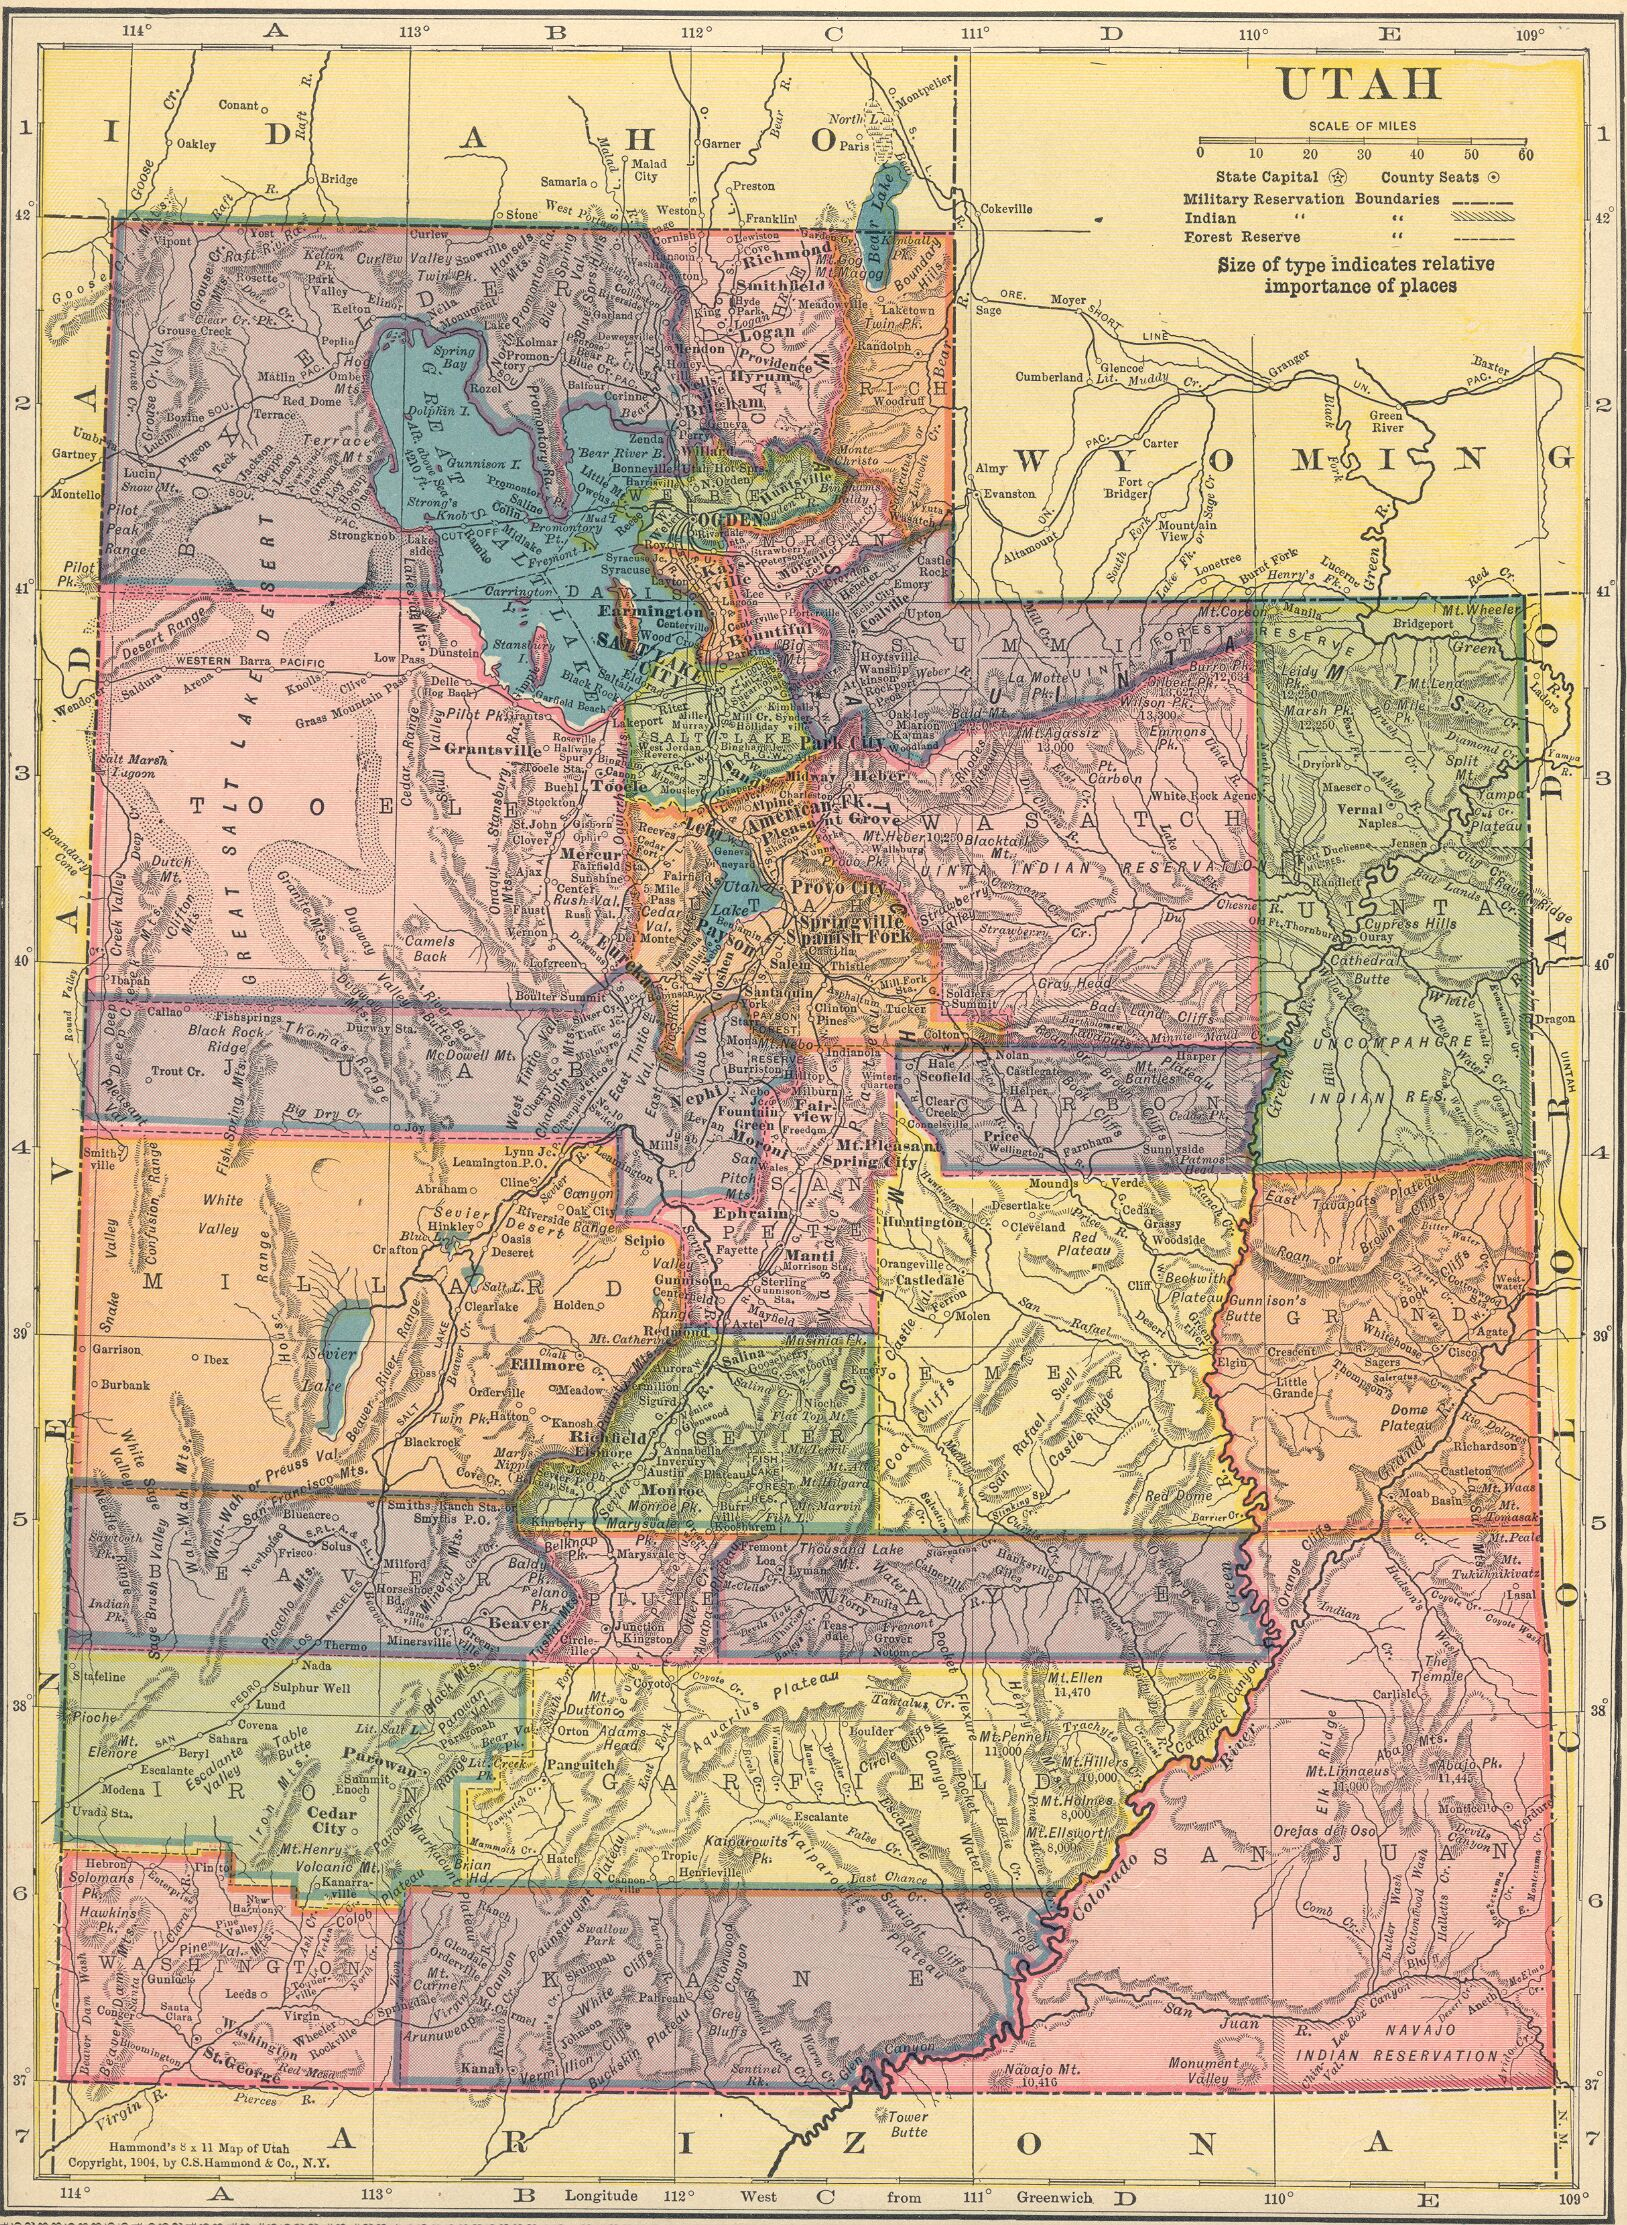 The USGenWeb Archives Digital Map Library Hammonds  Atlas - Utah on a map of the usa